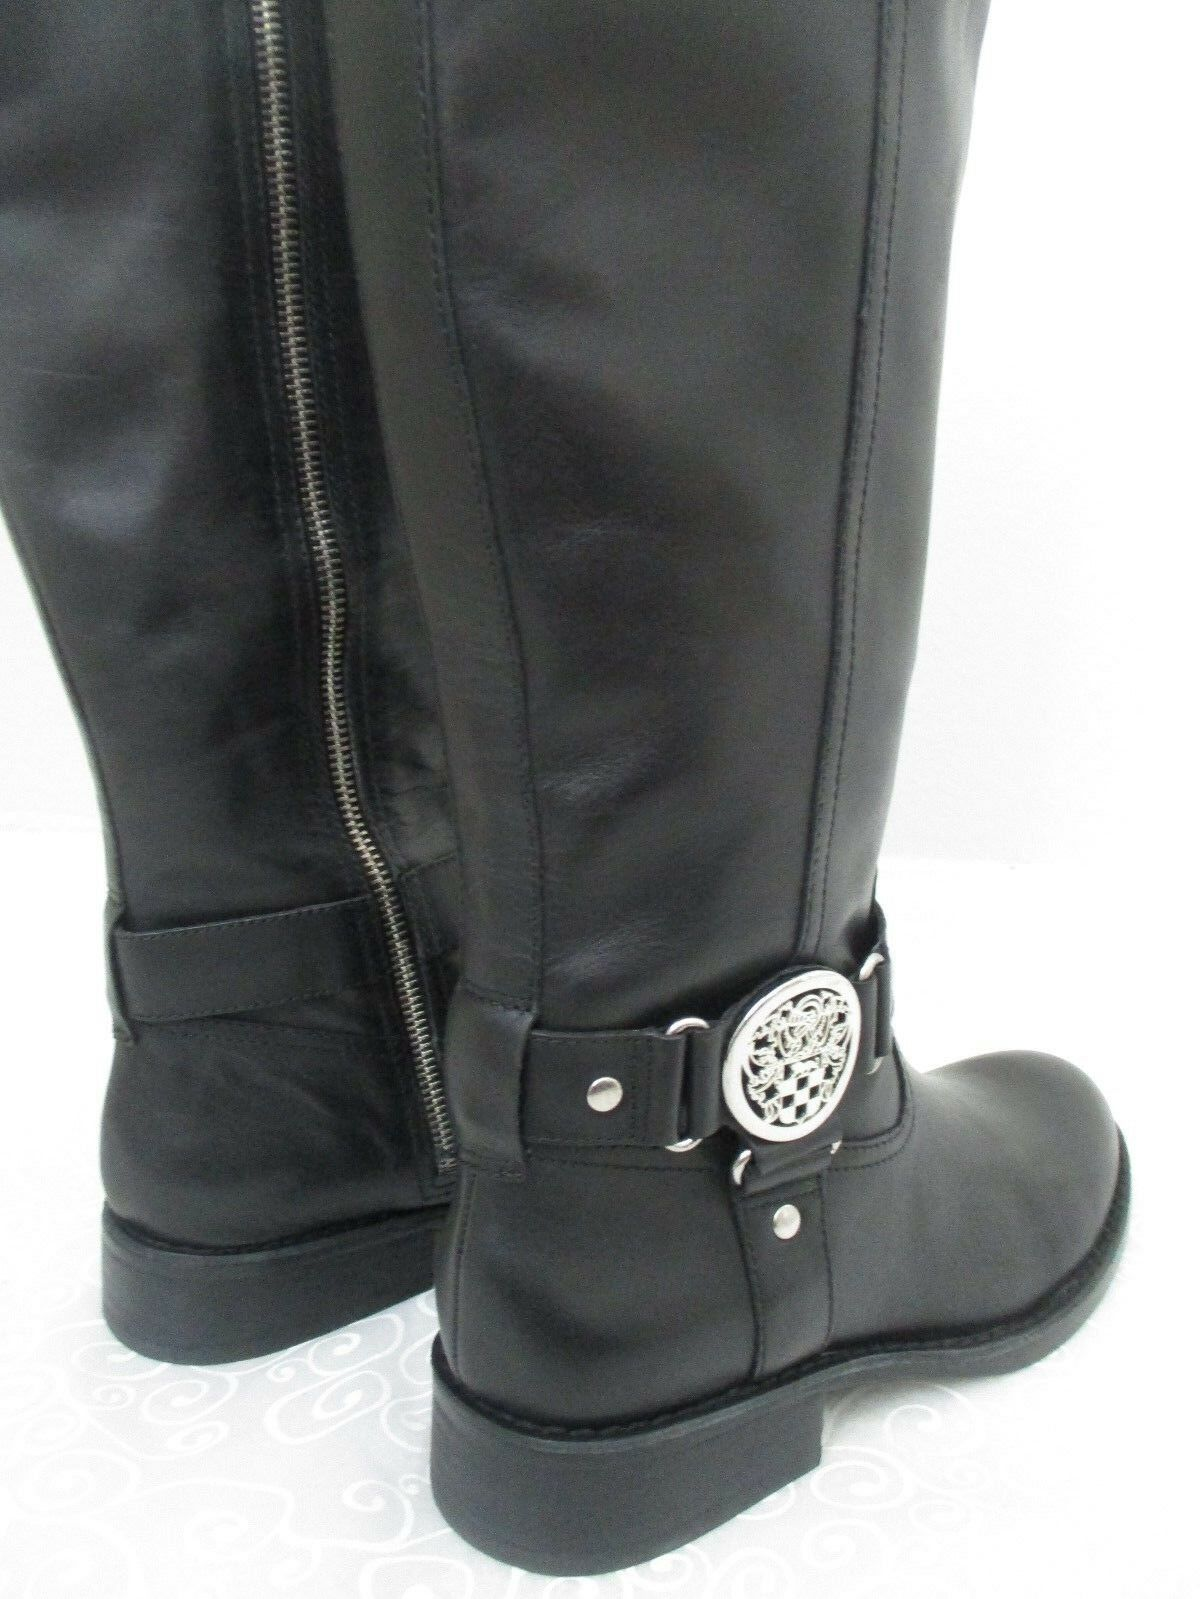 VINCE CAMUTO FARROW noir LEATHER LEATHER LEATHER KNEE HIGH bottes Taille 8 1 2 M - NEW a308fb